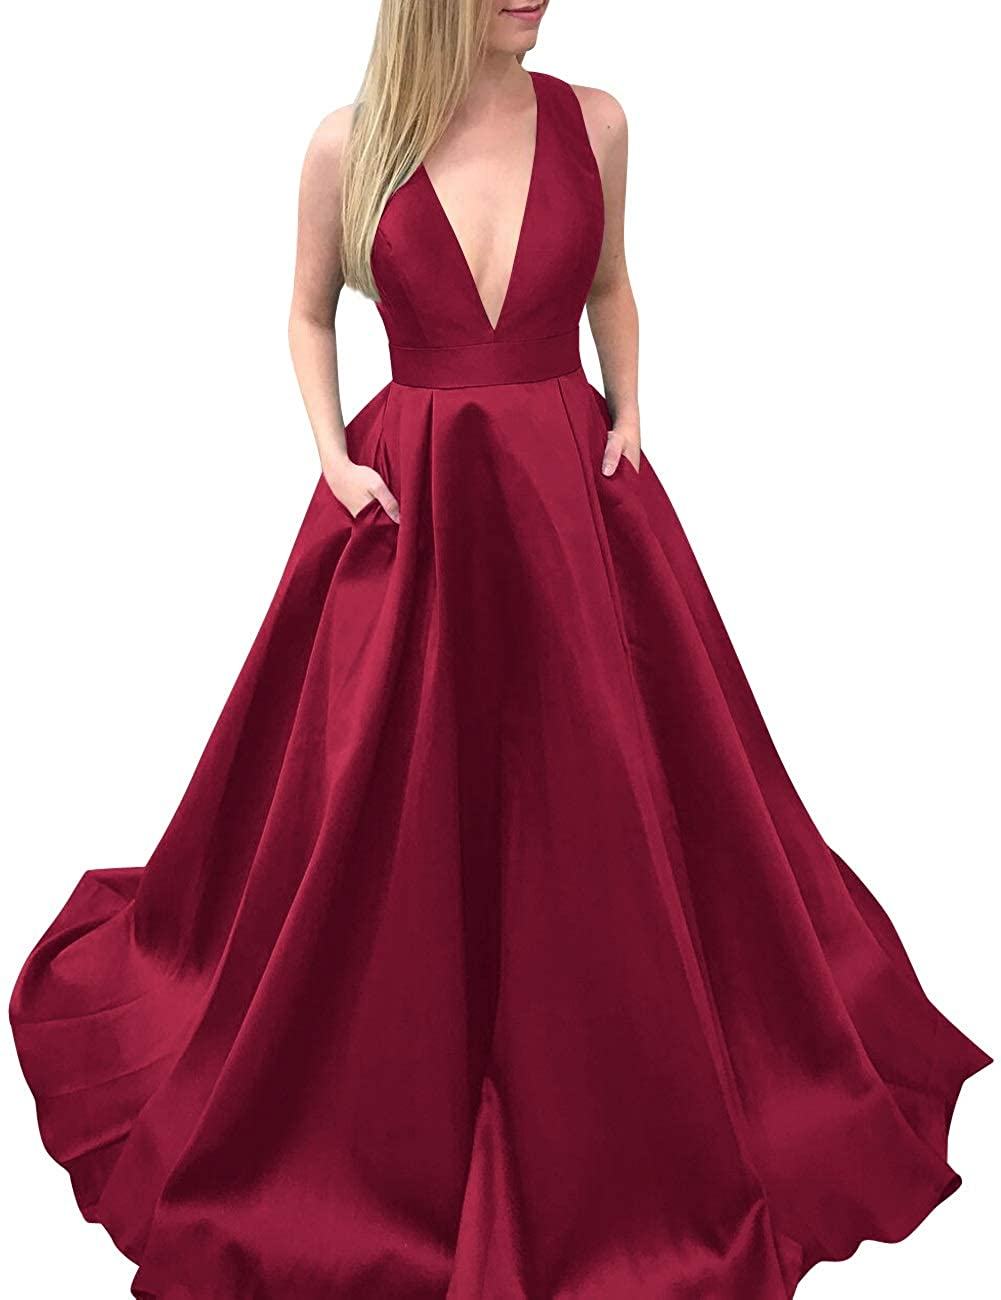 Burgundy MorySong Women's Deep VNeck Bowknot Back Satin Prom Evening Dress with Pockets